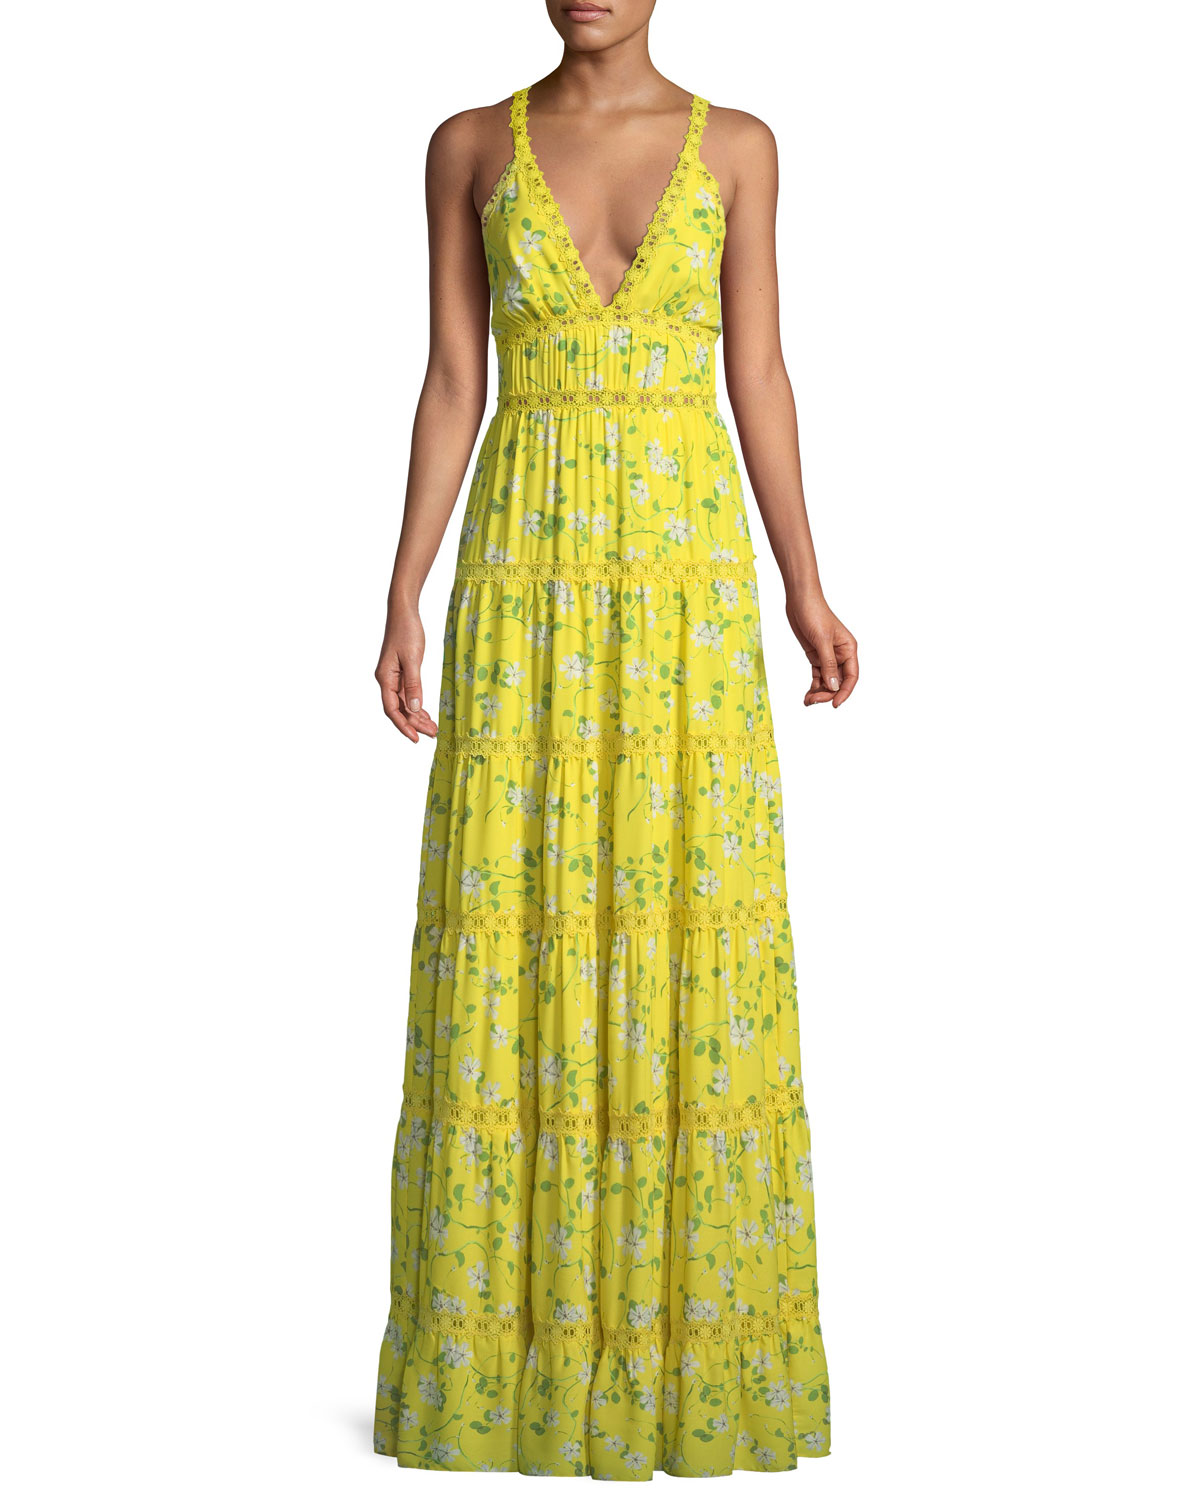 Karolina Crochet-trimmed Floral-print Chiffon Maxi Dress - Bright yellow Alice & Olivia qt904hFNf